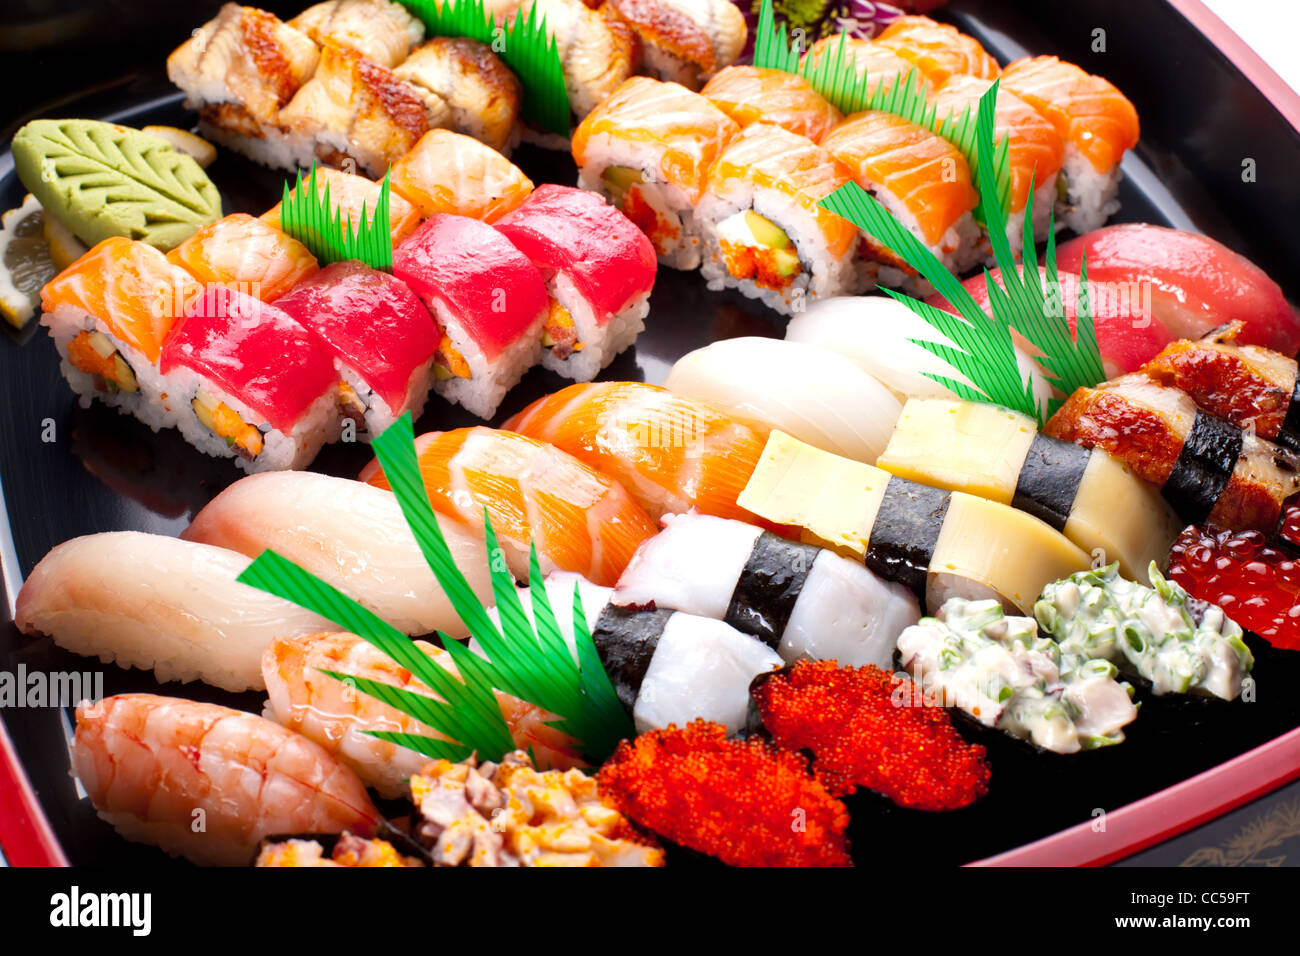 Sushi rolls on a black plate. - Stock Image